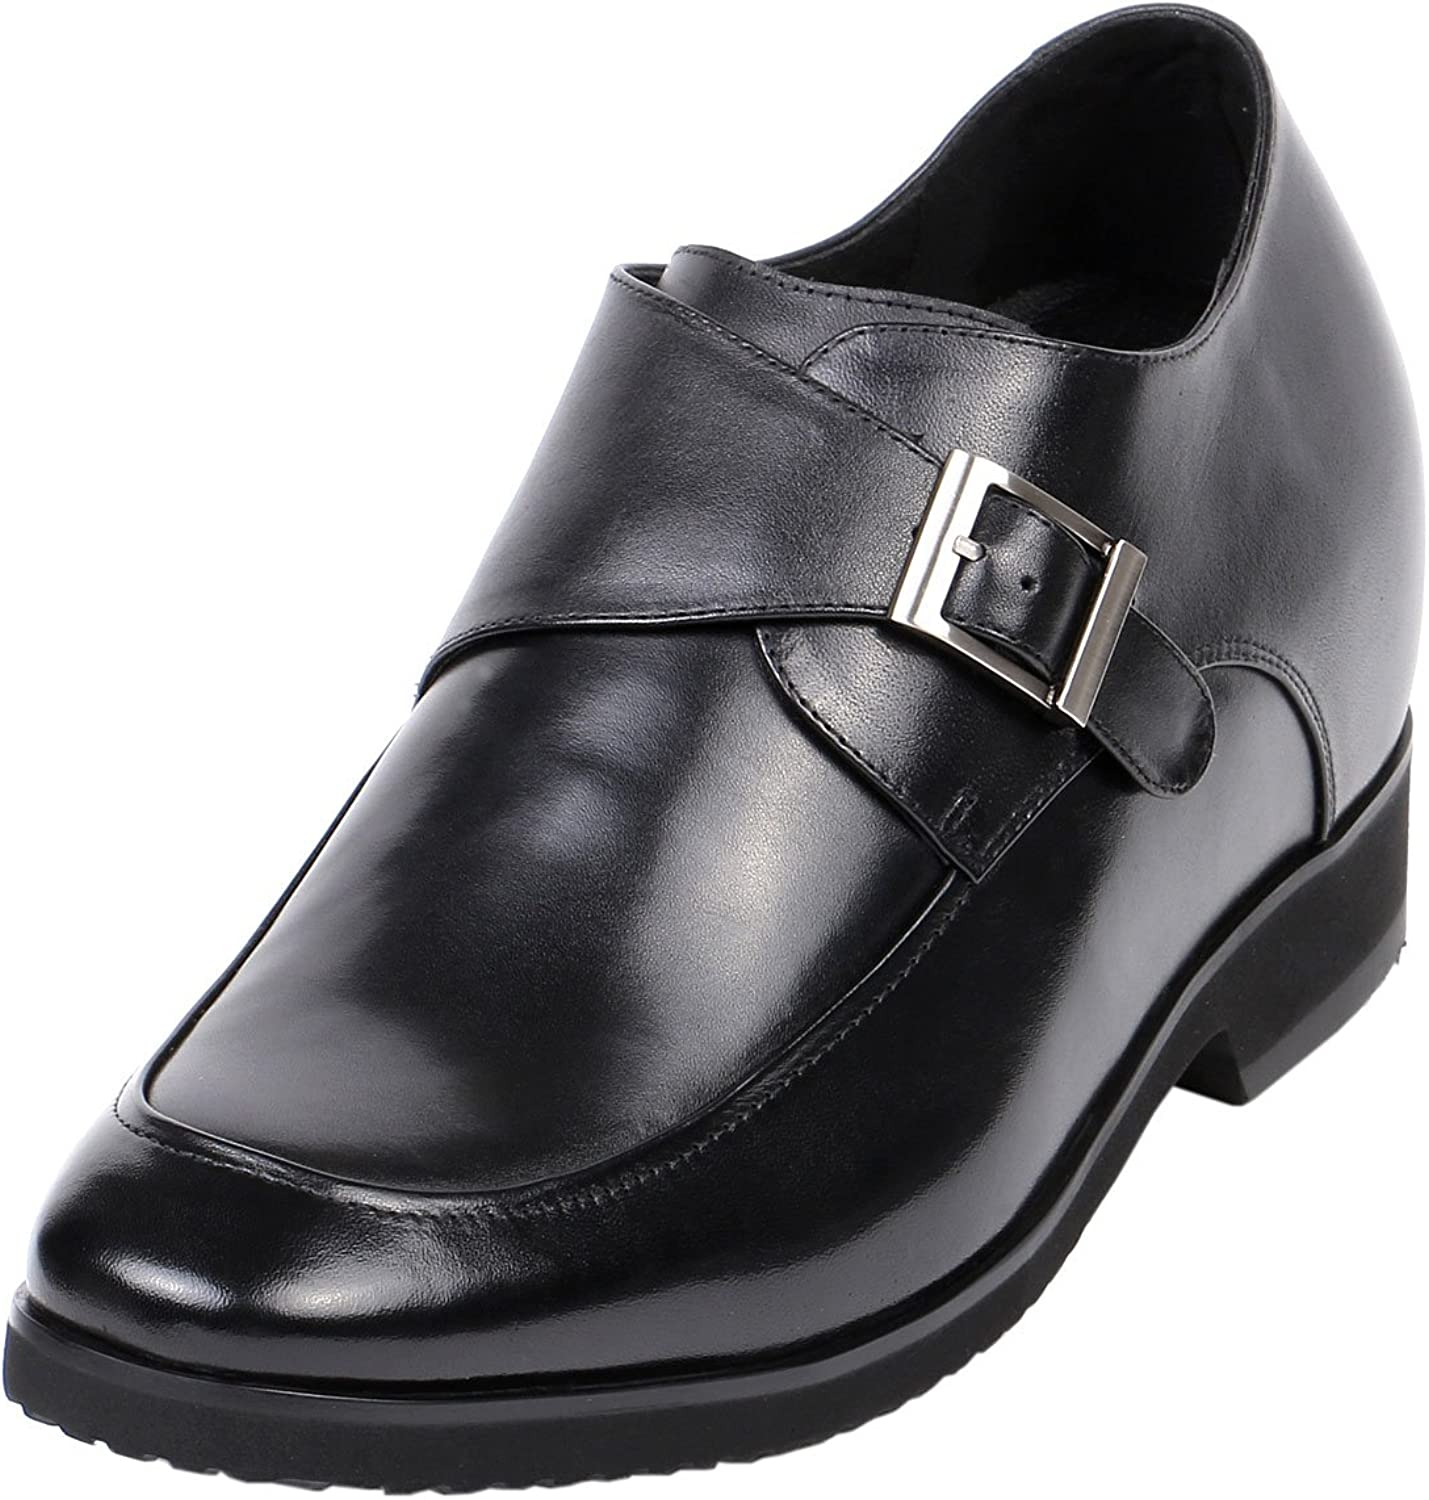 4  Height Gain shoes to Extend Short Men Buckle Fashion GKD83